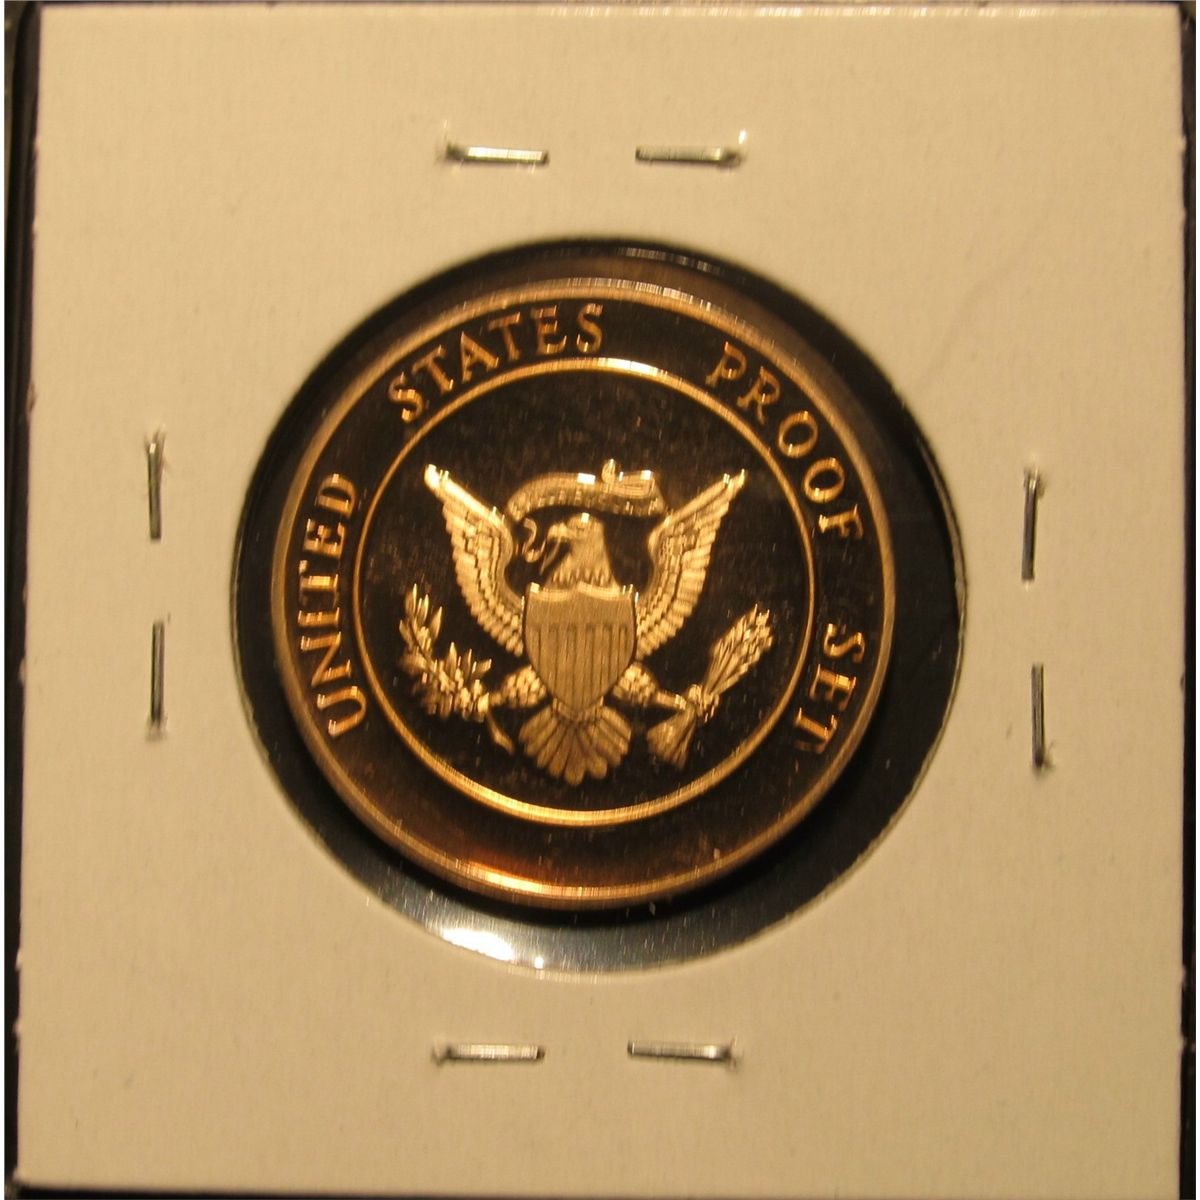 787  Proof Mint Medal From 1982 Proof Set – Same Weight & Diameter As An  SBA Dollar, Made To Fill Th